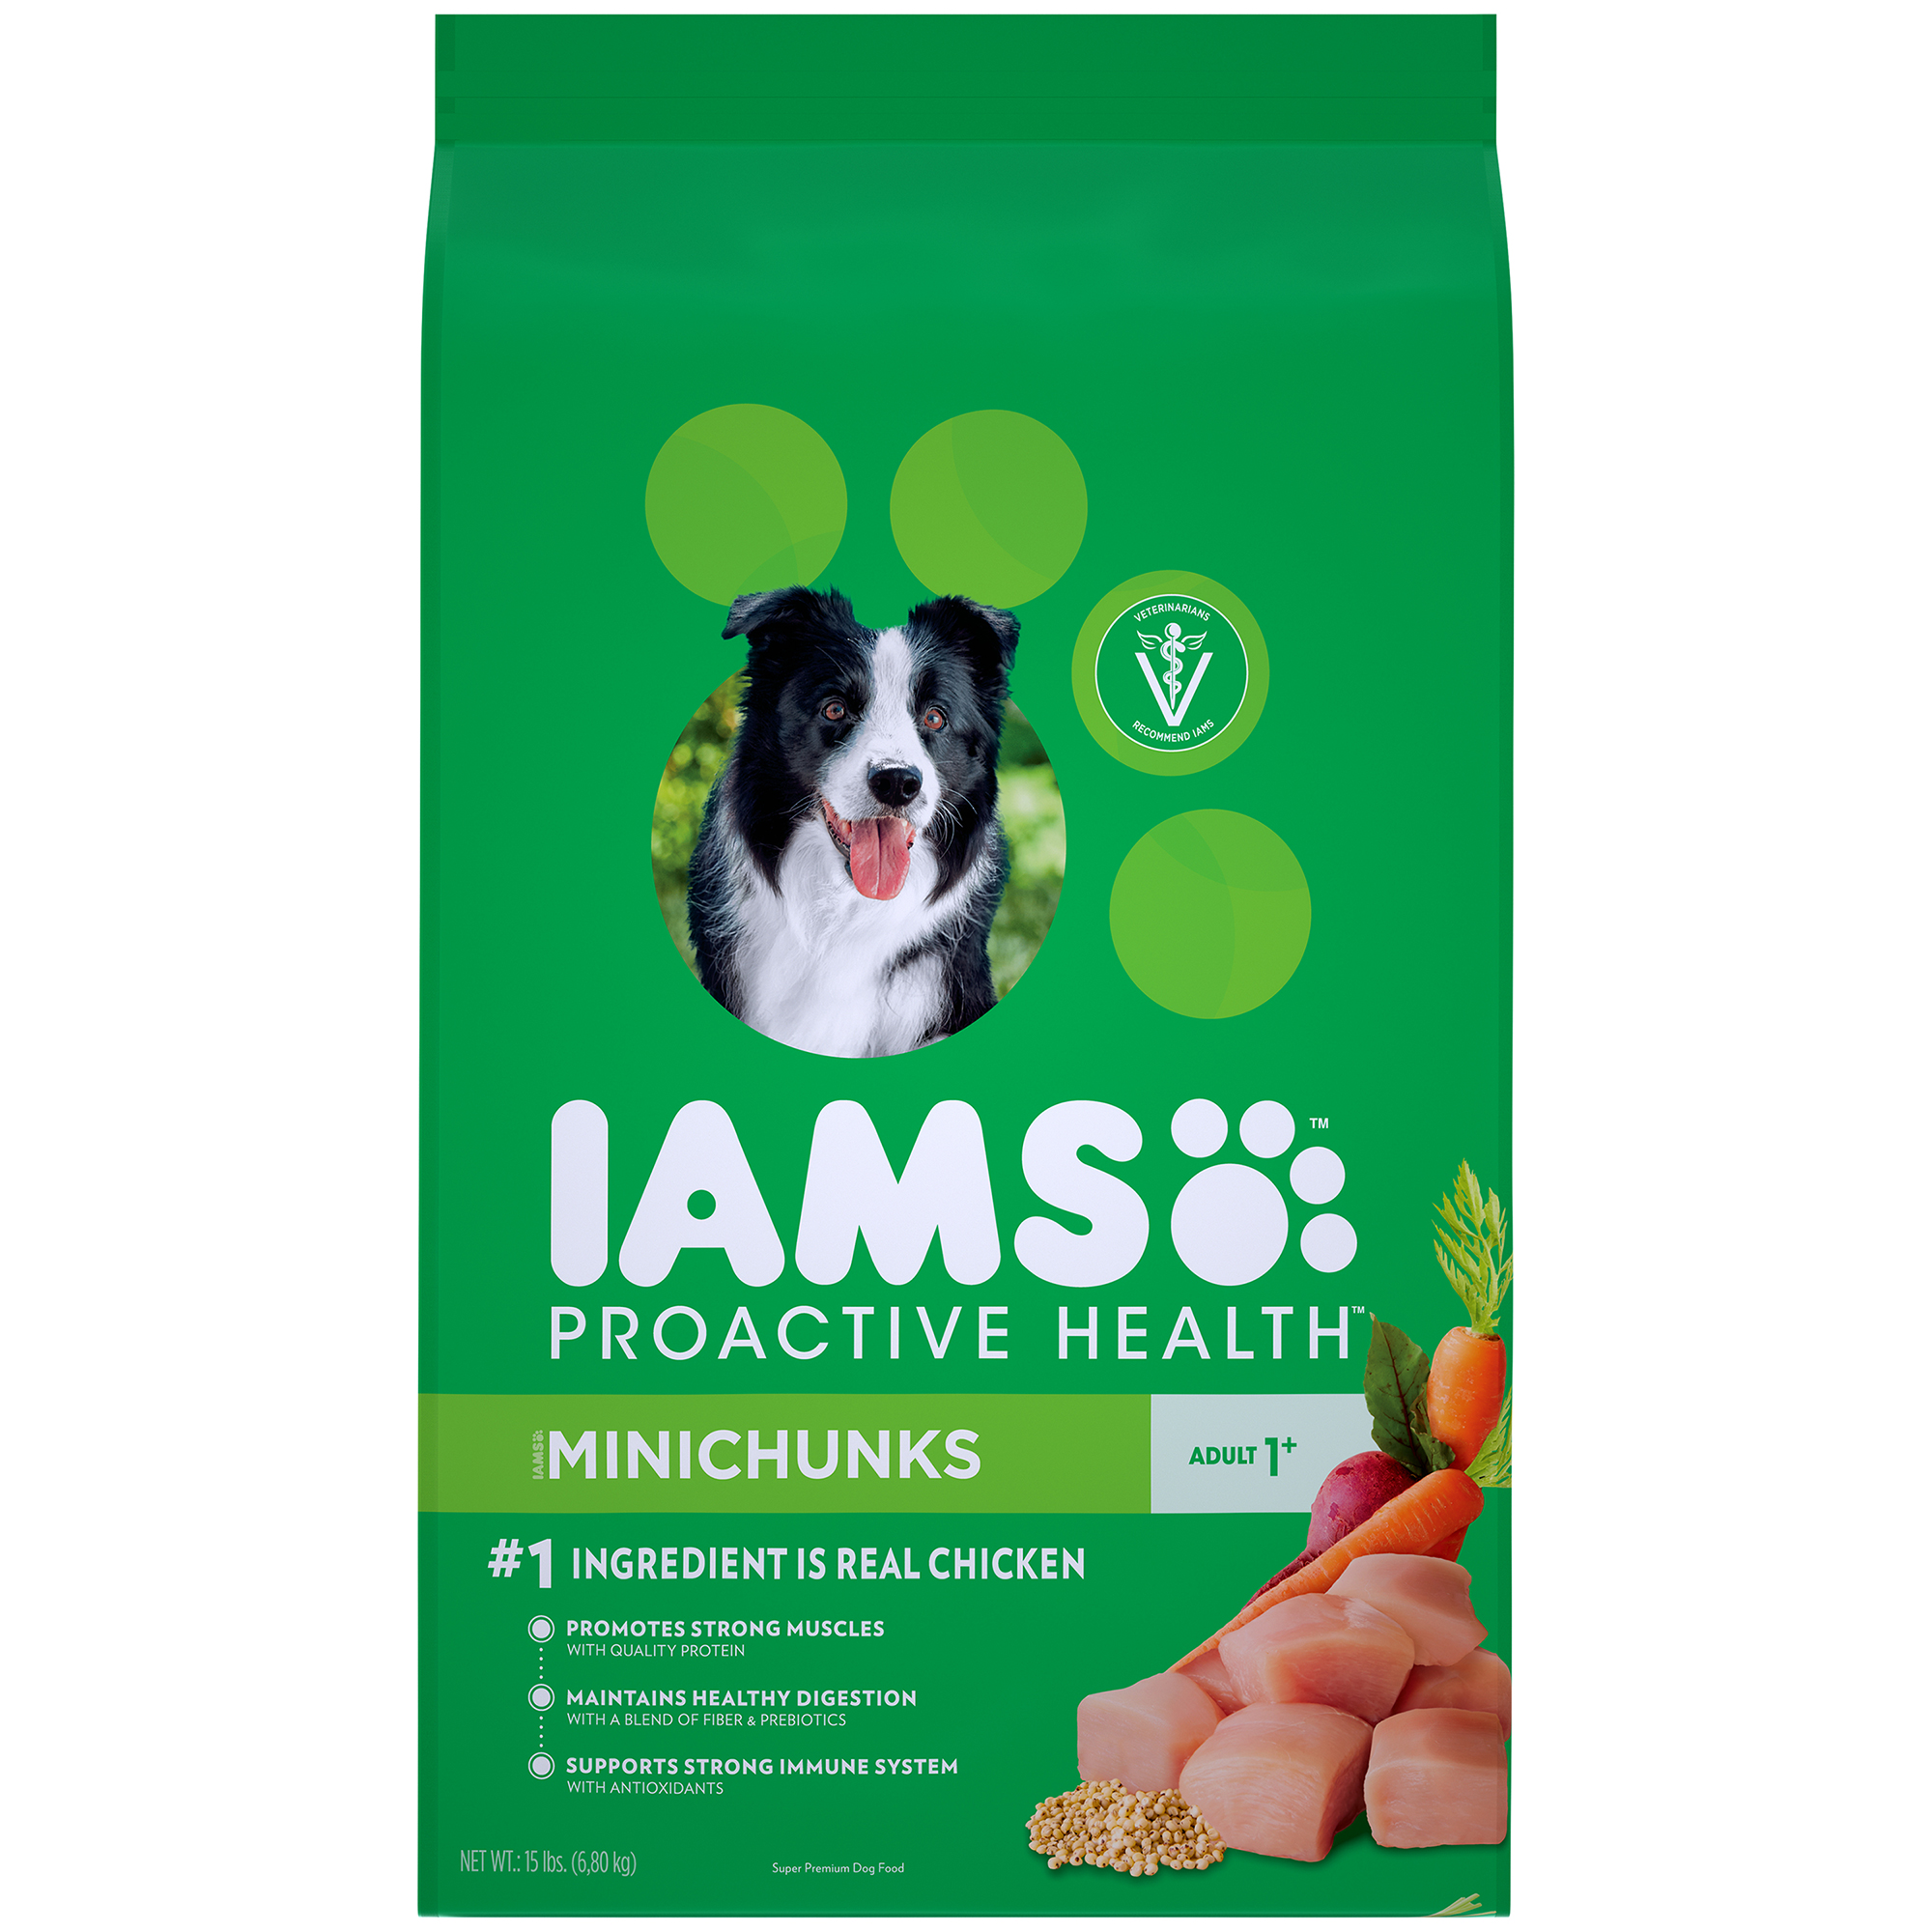 IAMS PROACTIVE HEALTH Adult Minichunks Dry Dog Food Chicken, 15 lb. Bag by Mars Petcare